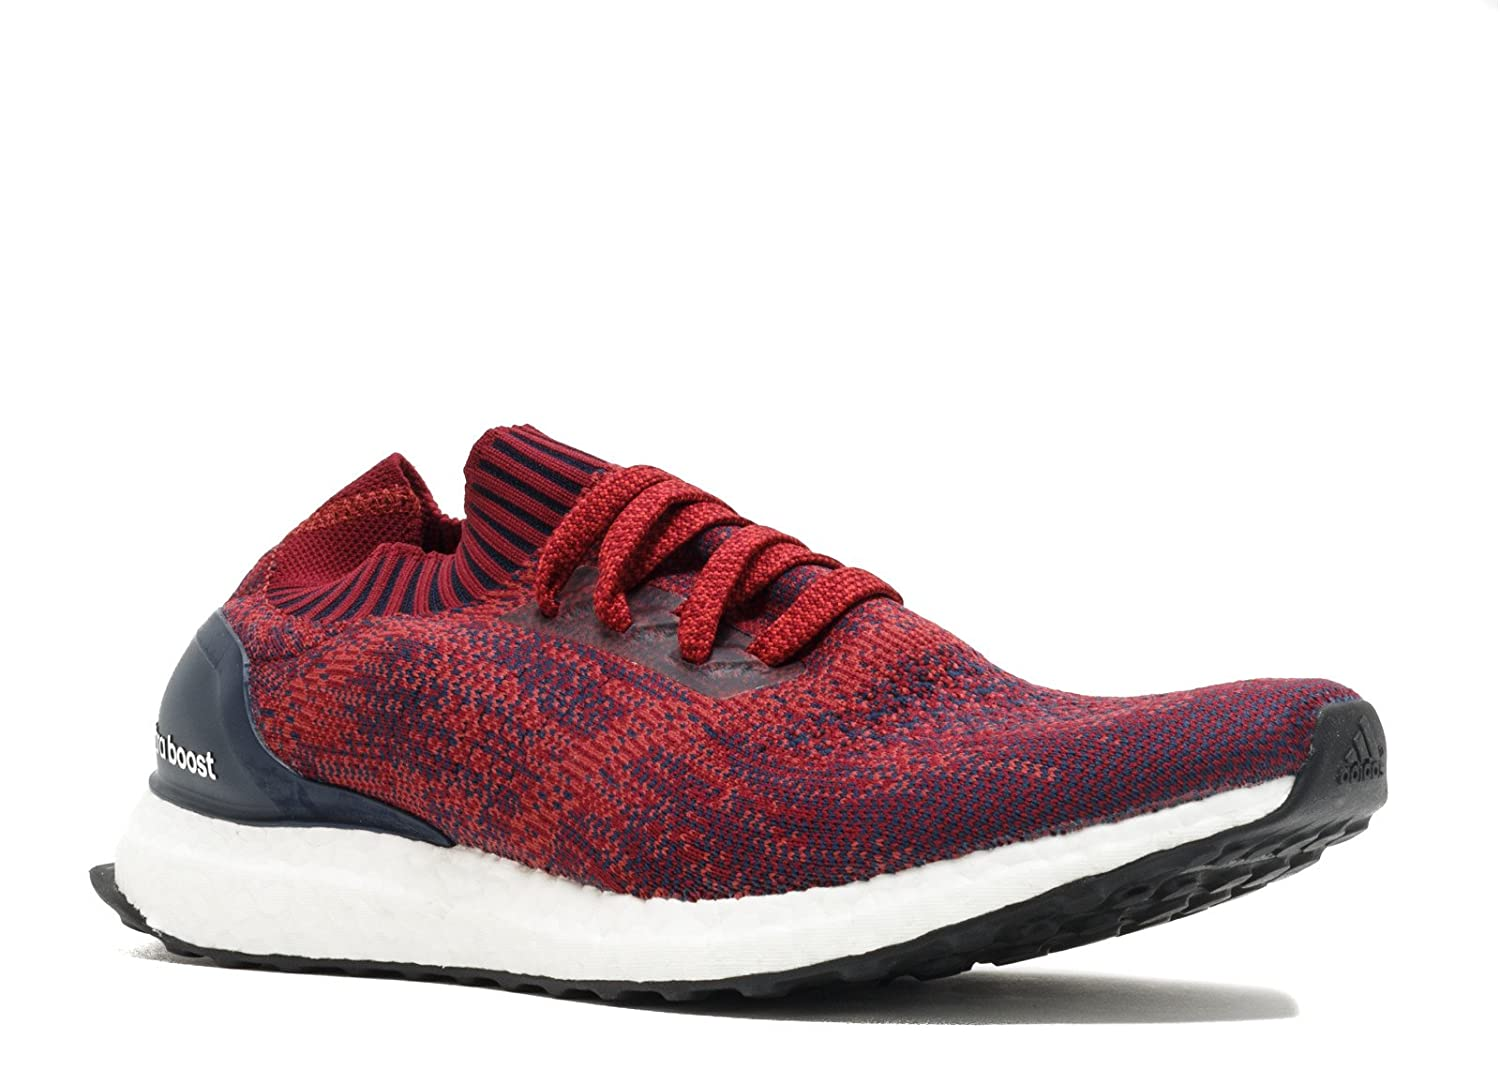 013543b461f adidas Ultraboost Uncaged Shoe - Men's Running